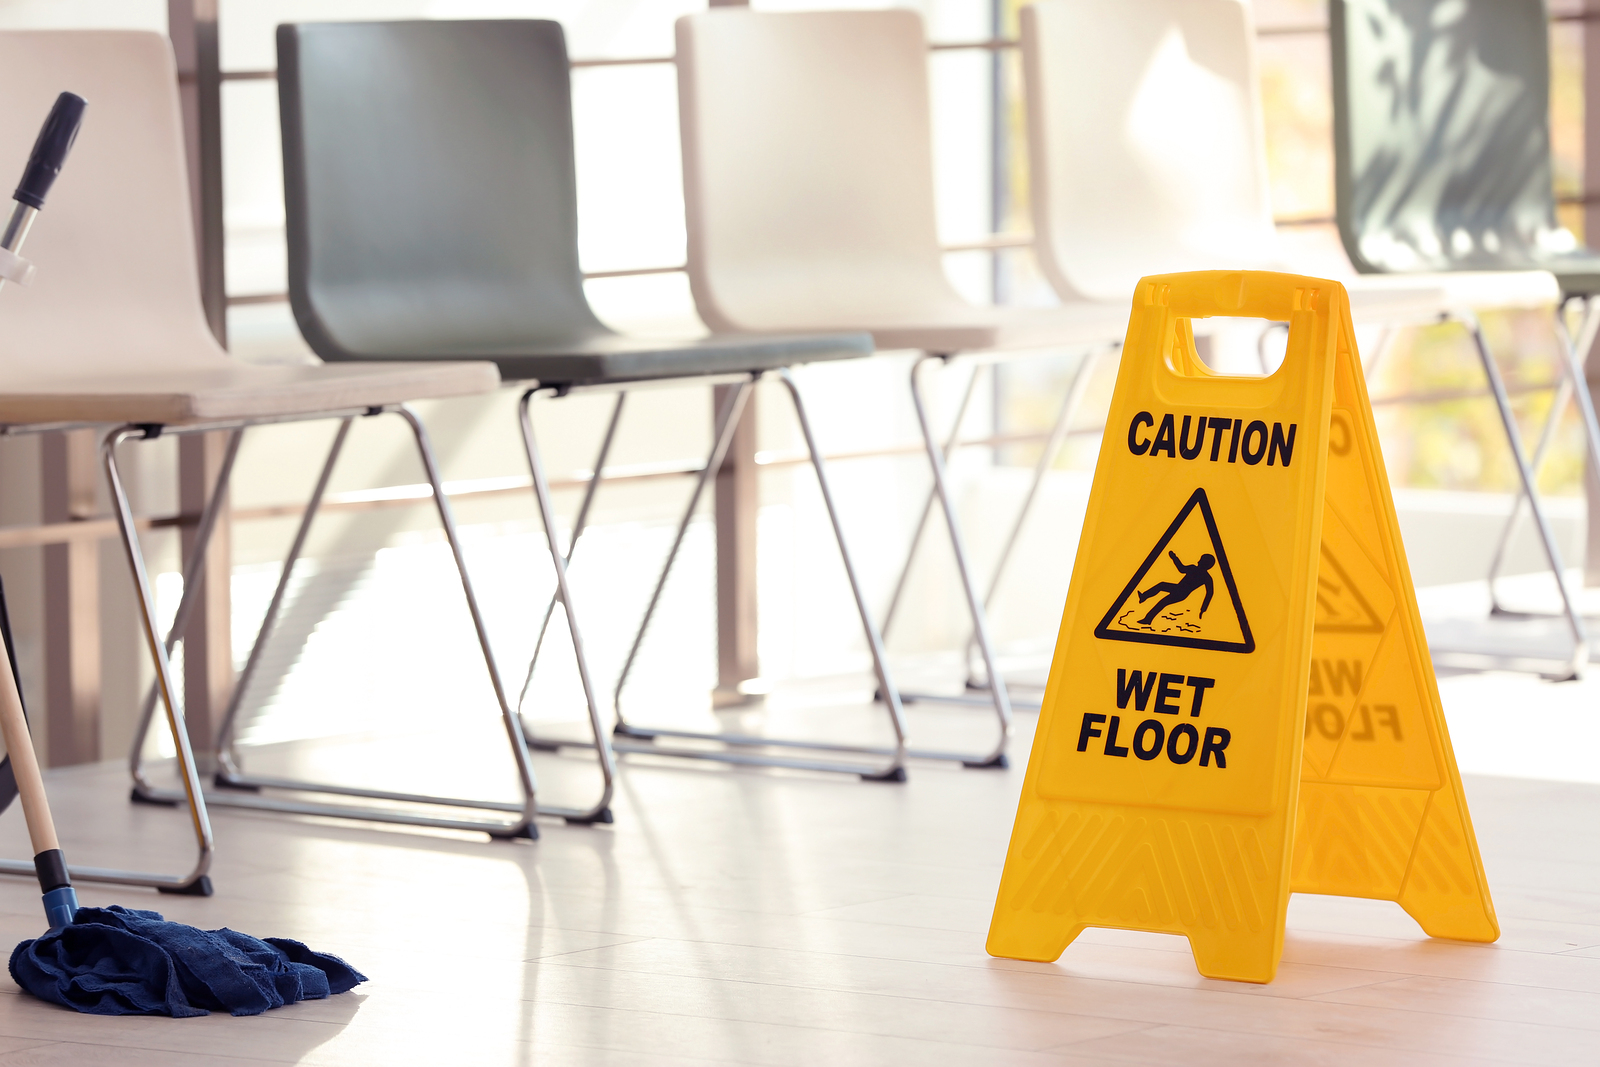 Commercial Cleaning Services Can Help You Outshine the Competition